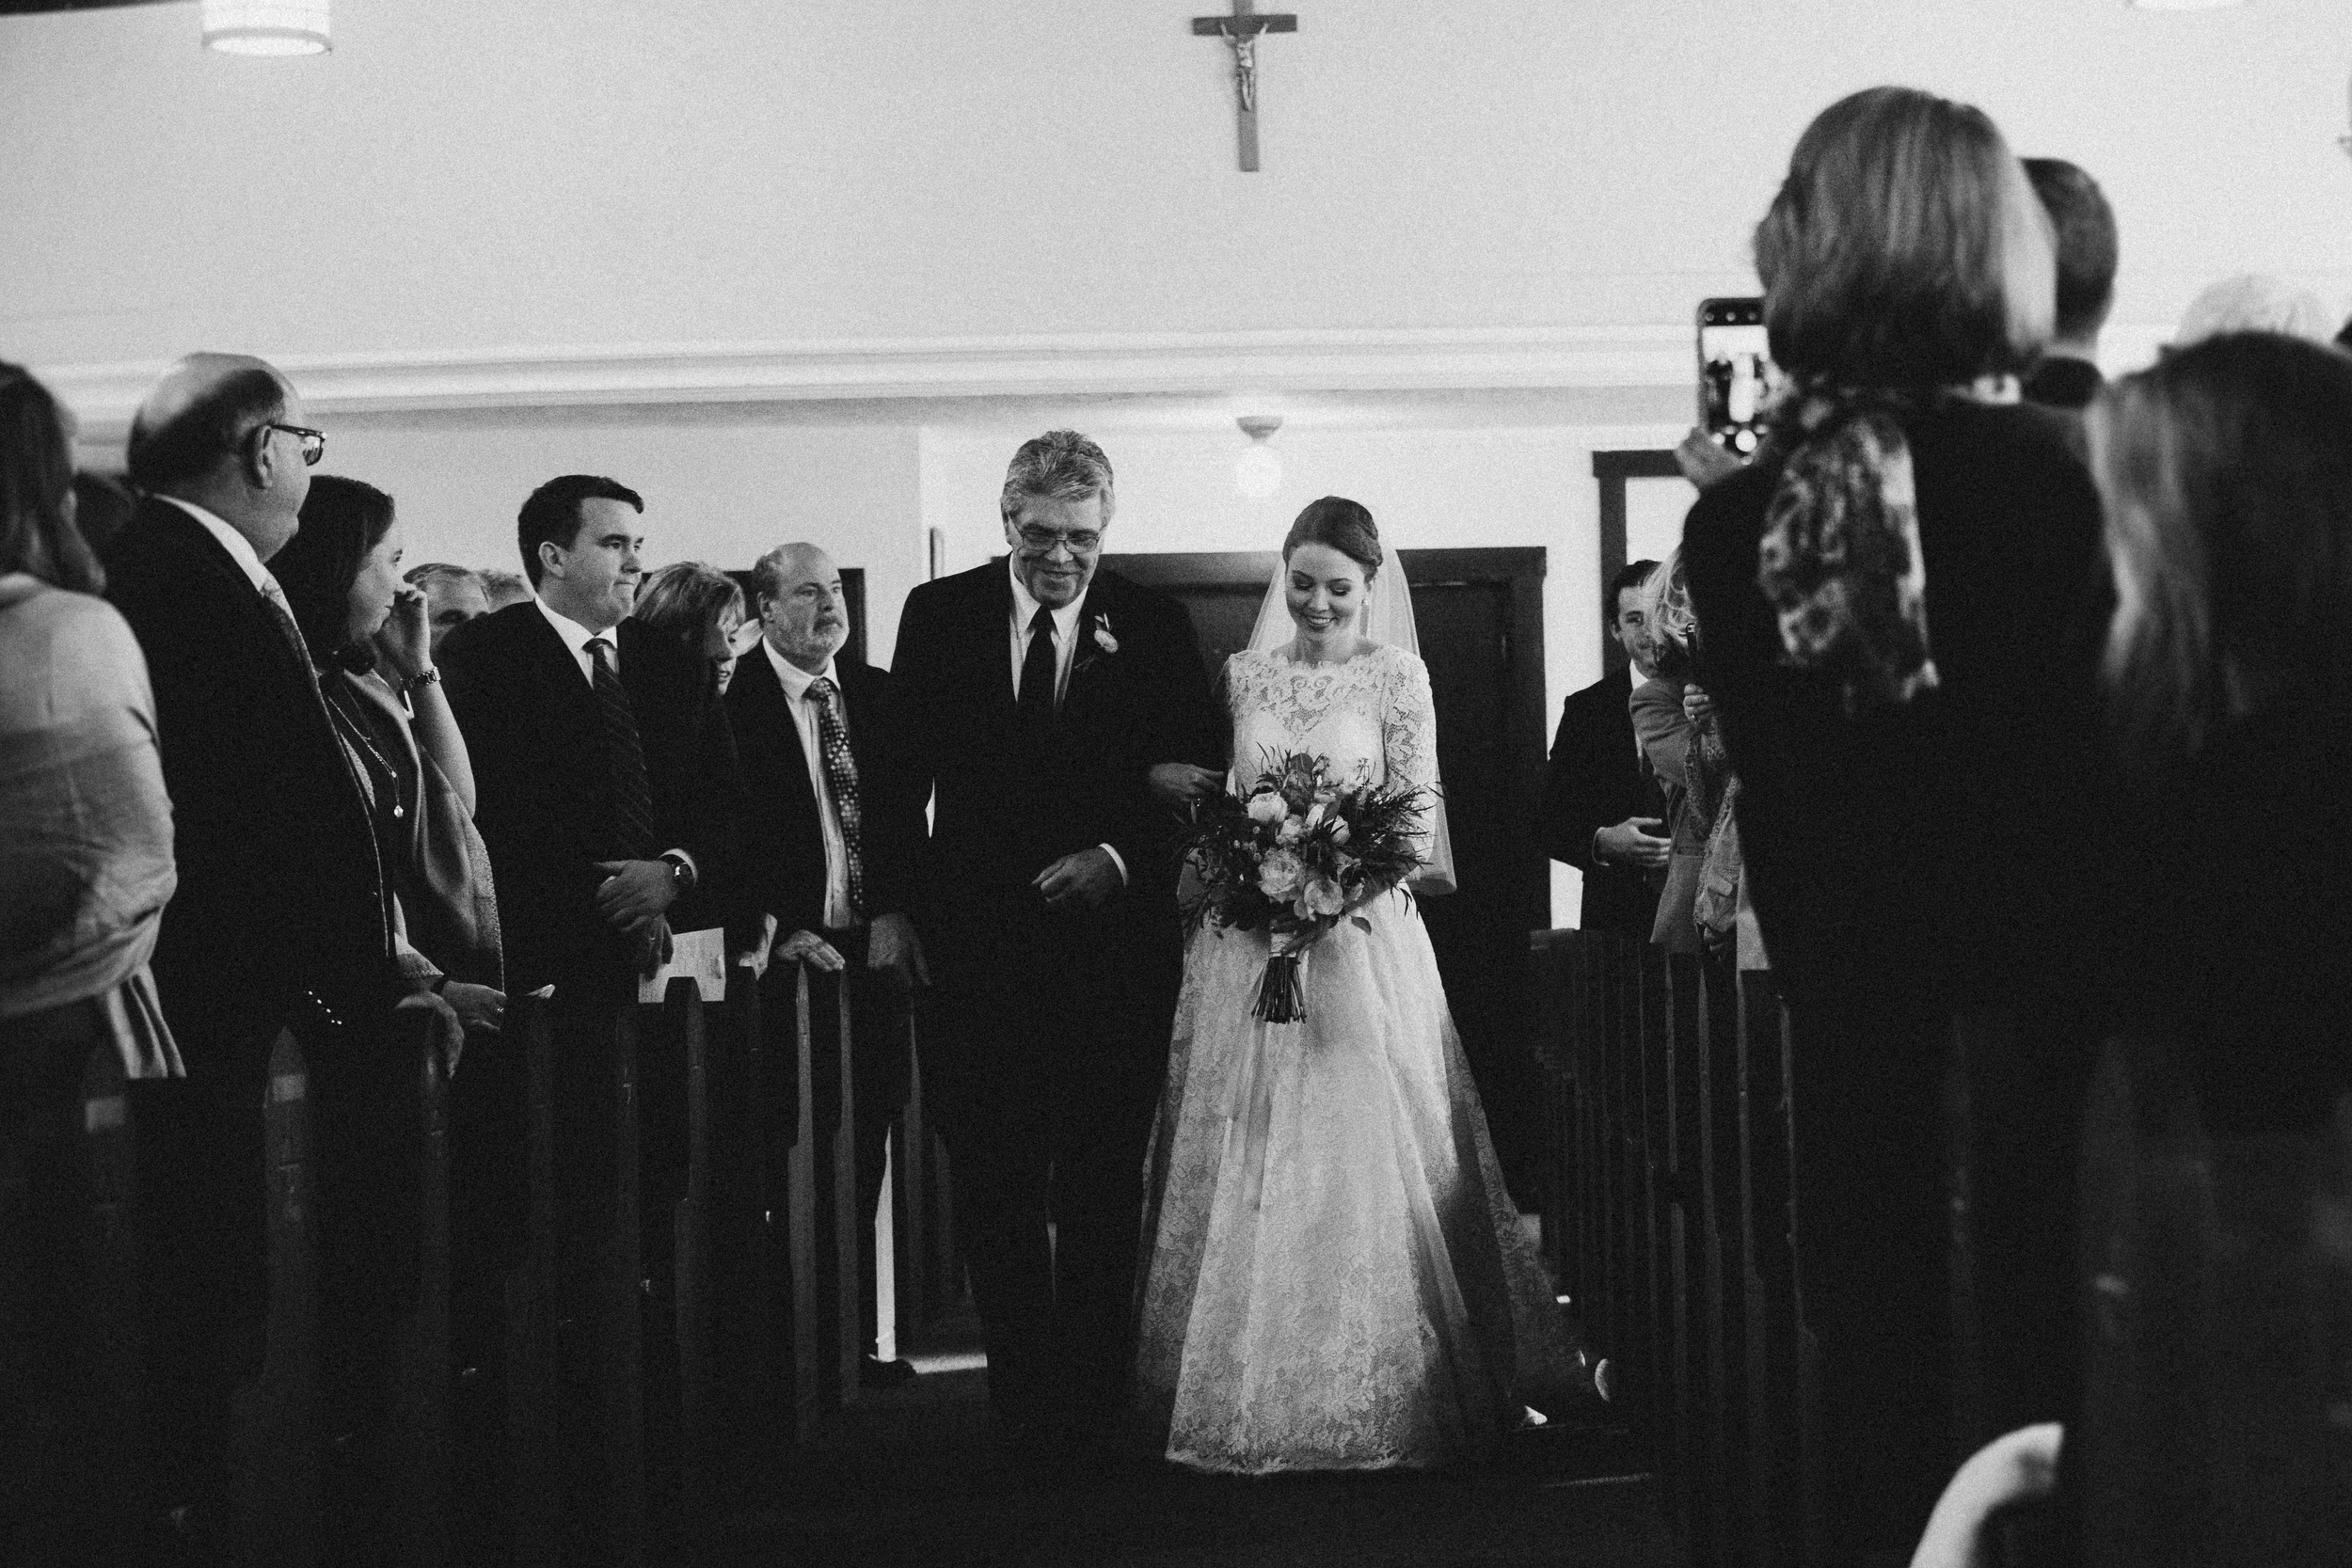 bride with her dad walking in to the wedding at st. james classic church in groton timeless celebrity wedding